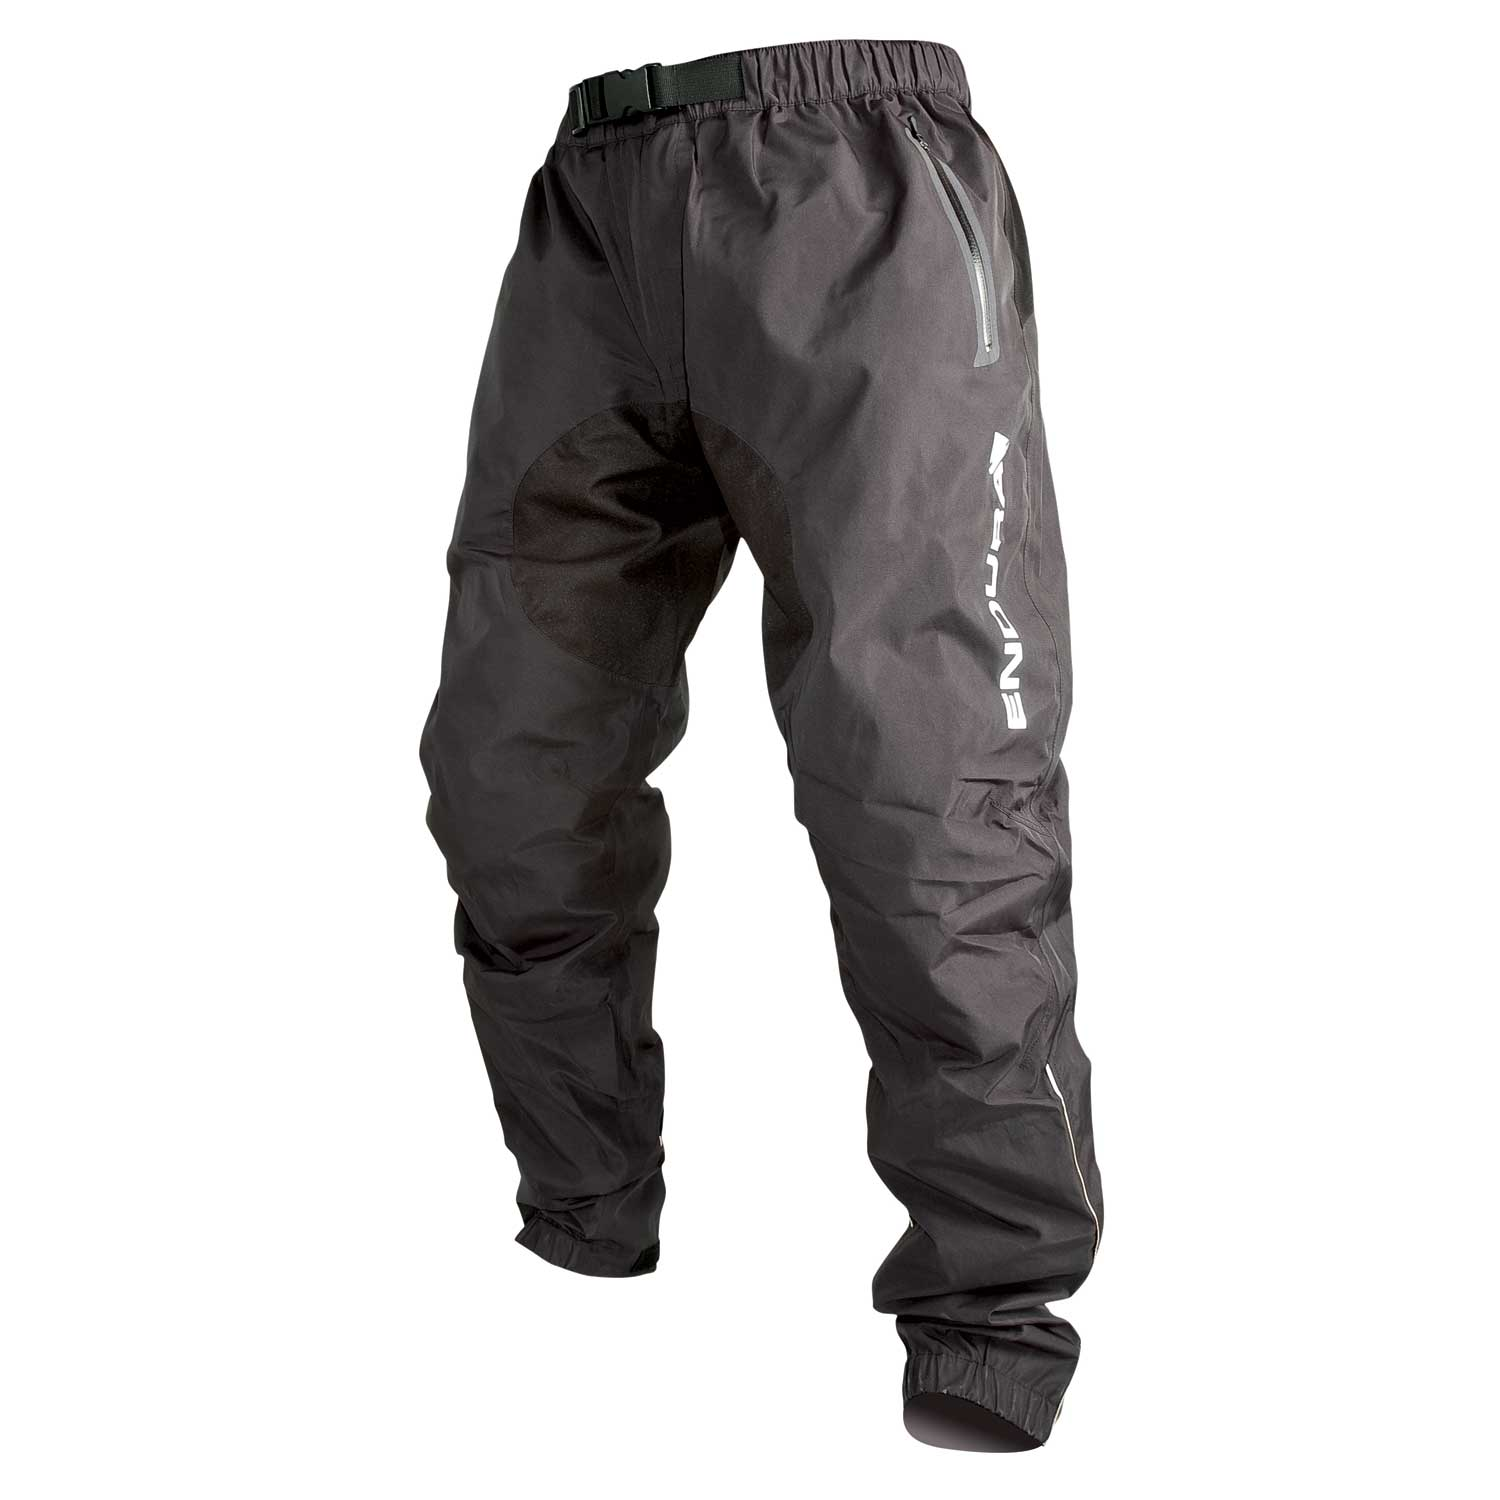 Velo PTFE Protection Overtrouser